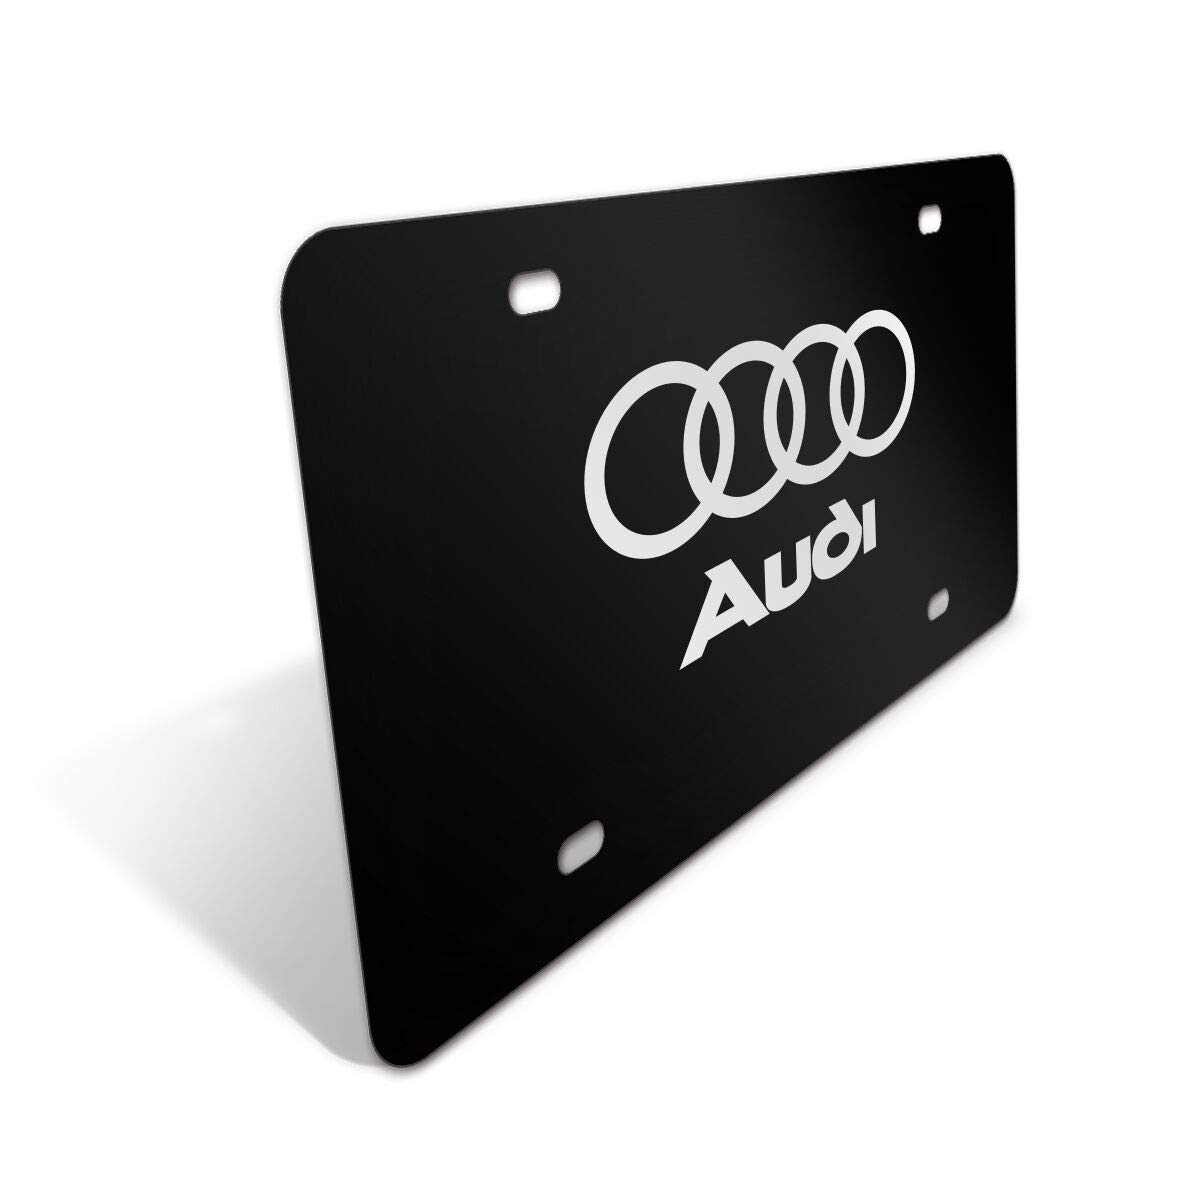 Mustang Logo Black Sturdy Stainless Steel Front License Plate,with Screw Caps Cover Set Suit,Applicable to US Standard car License Frame for Ford Mustang.(Print)